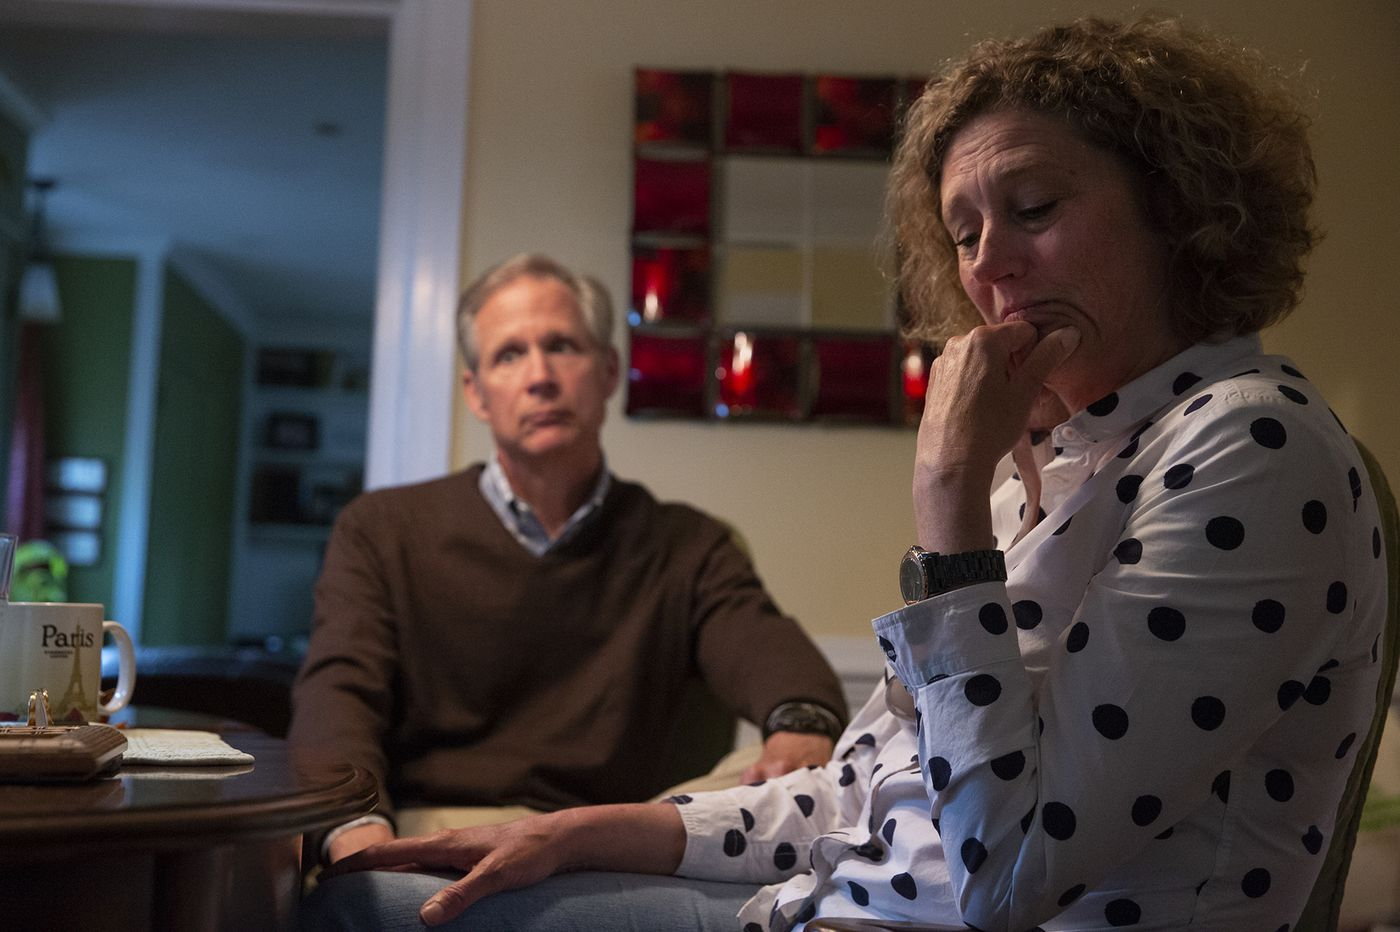 After losing their son to suicide, a Havertown couple seek to save others in their town. | Maria Panaritis